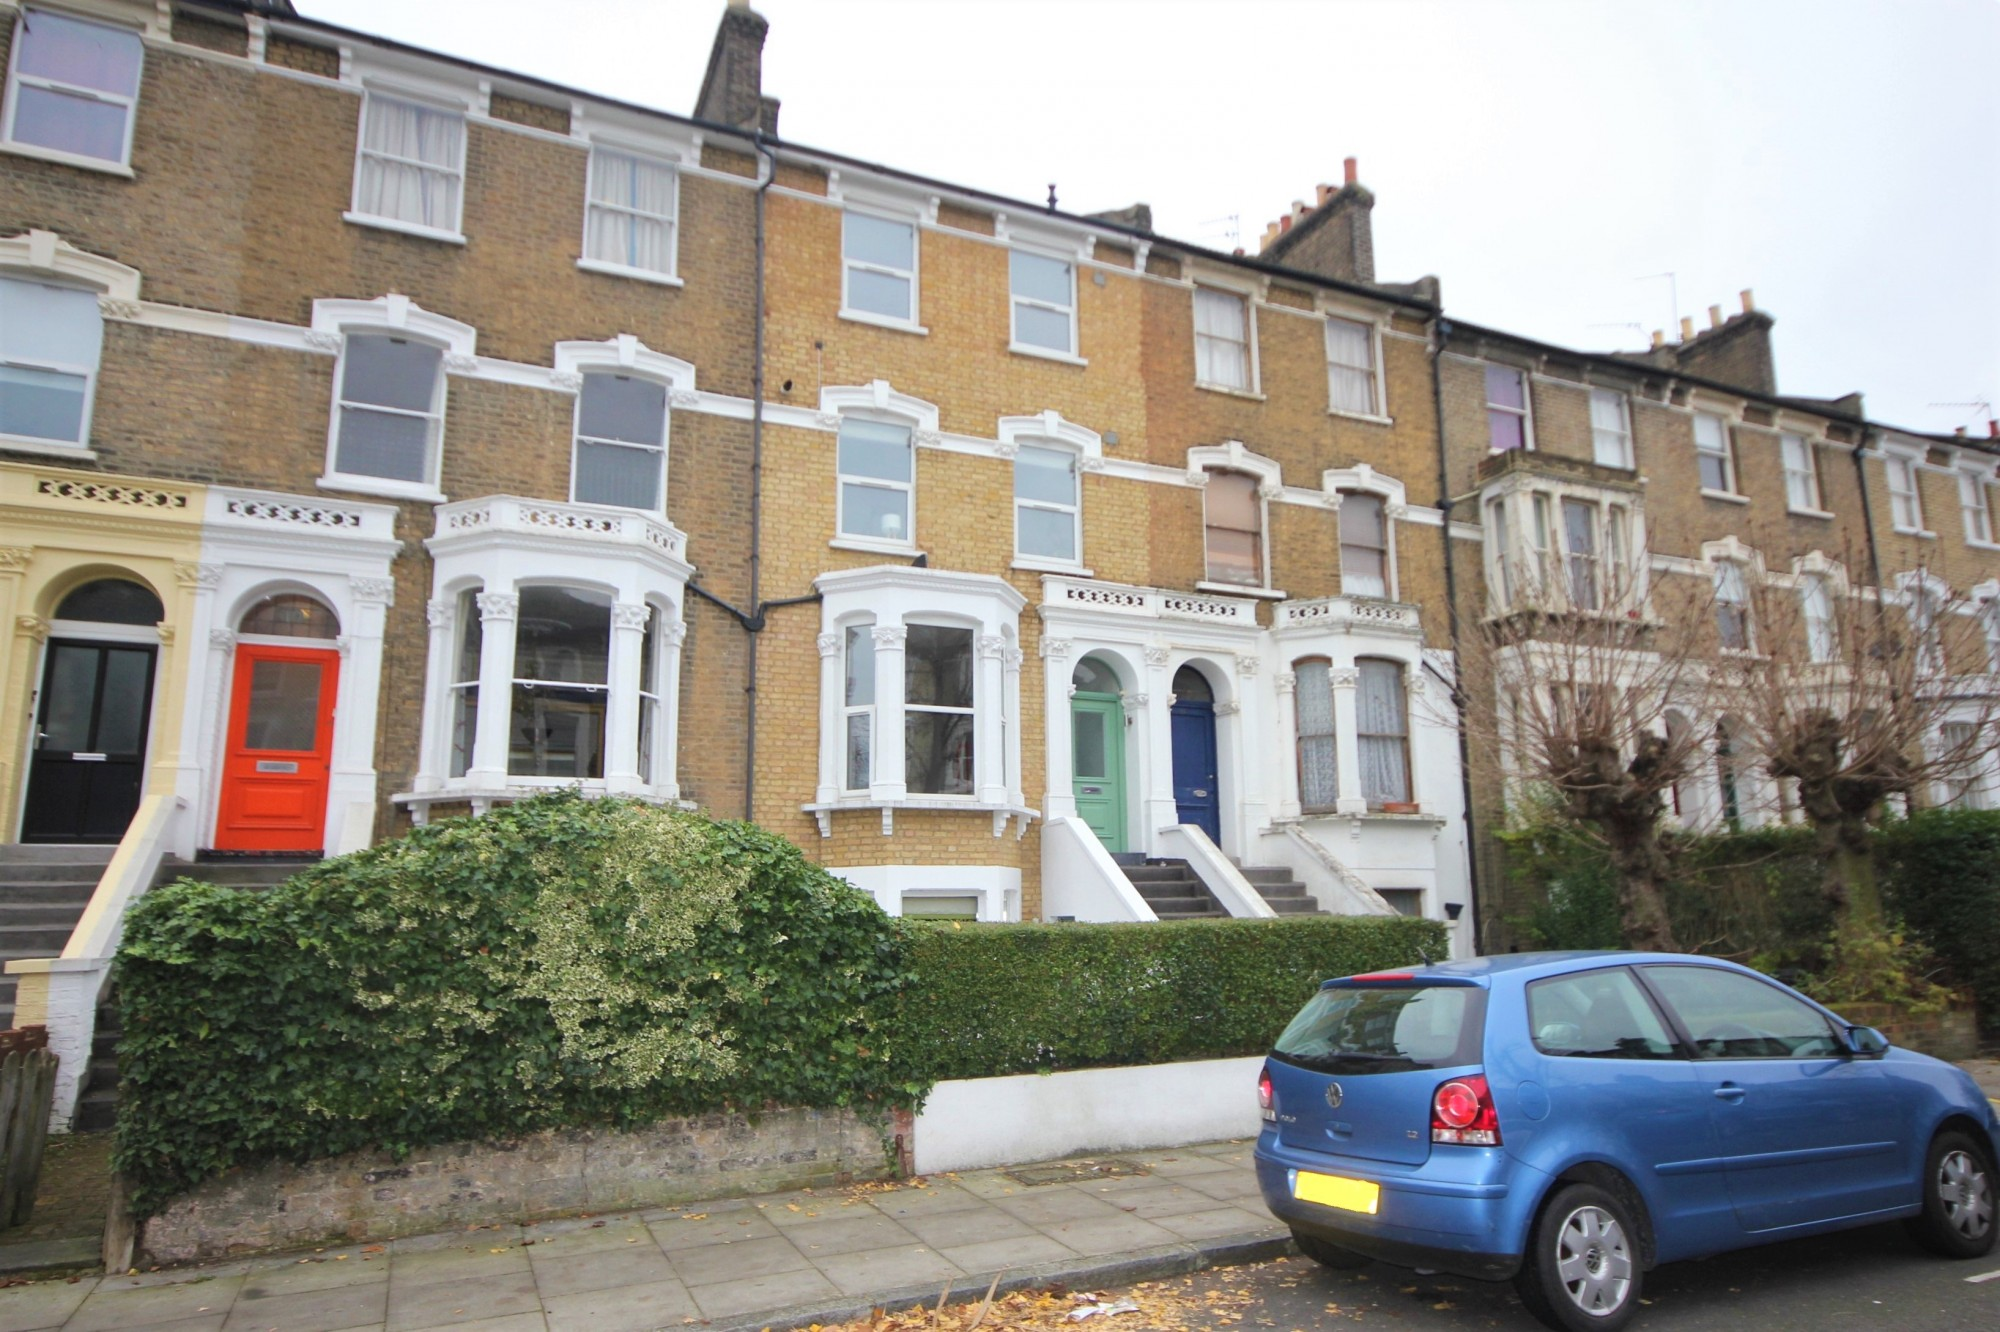 Images for Wray Crescent, London EAID:931013c273837aec744cf2e7889cb460 BID:1